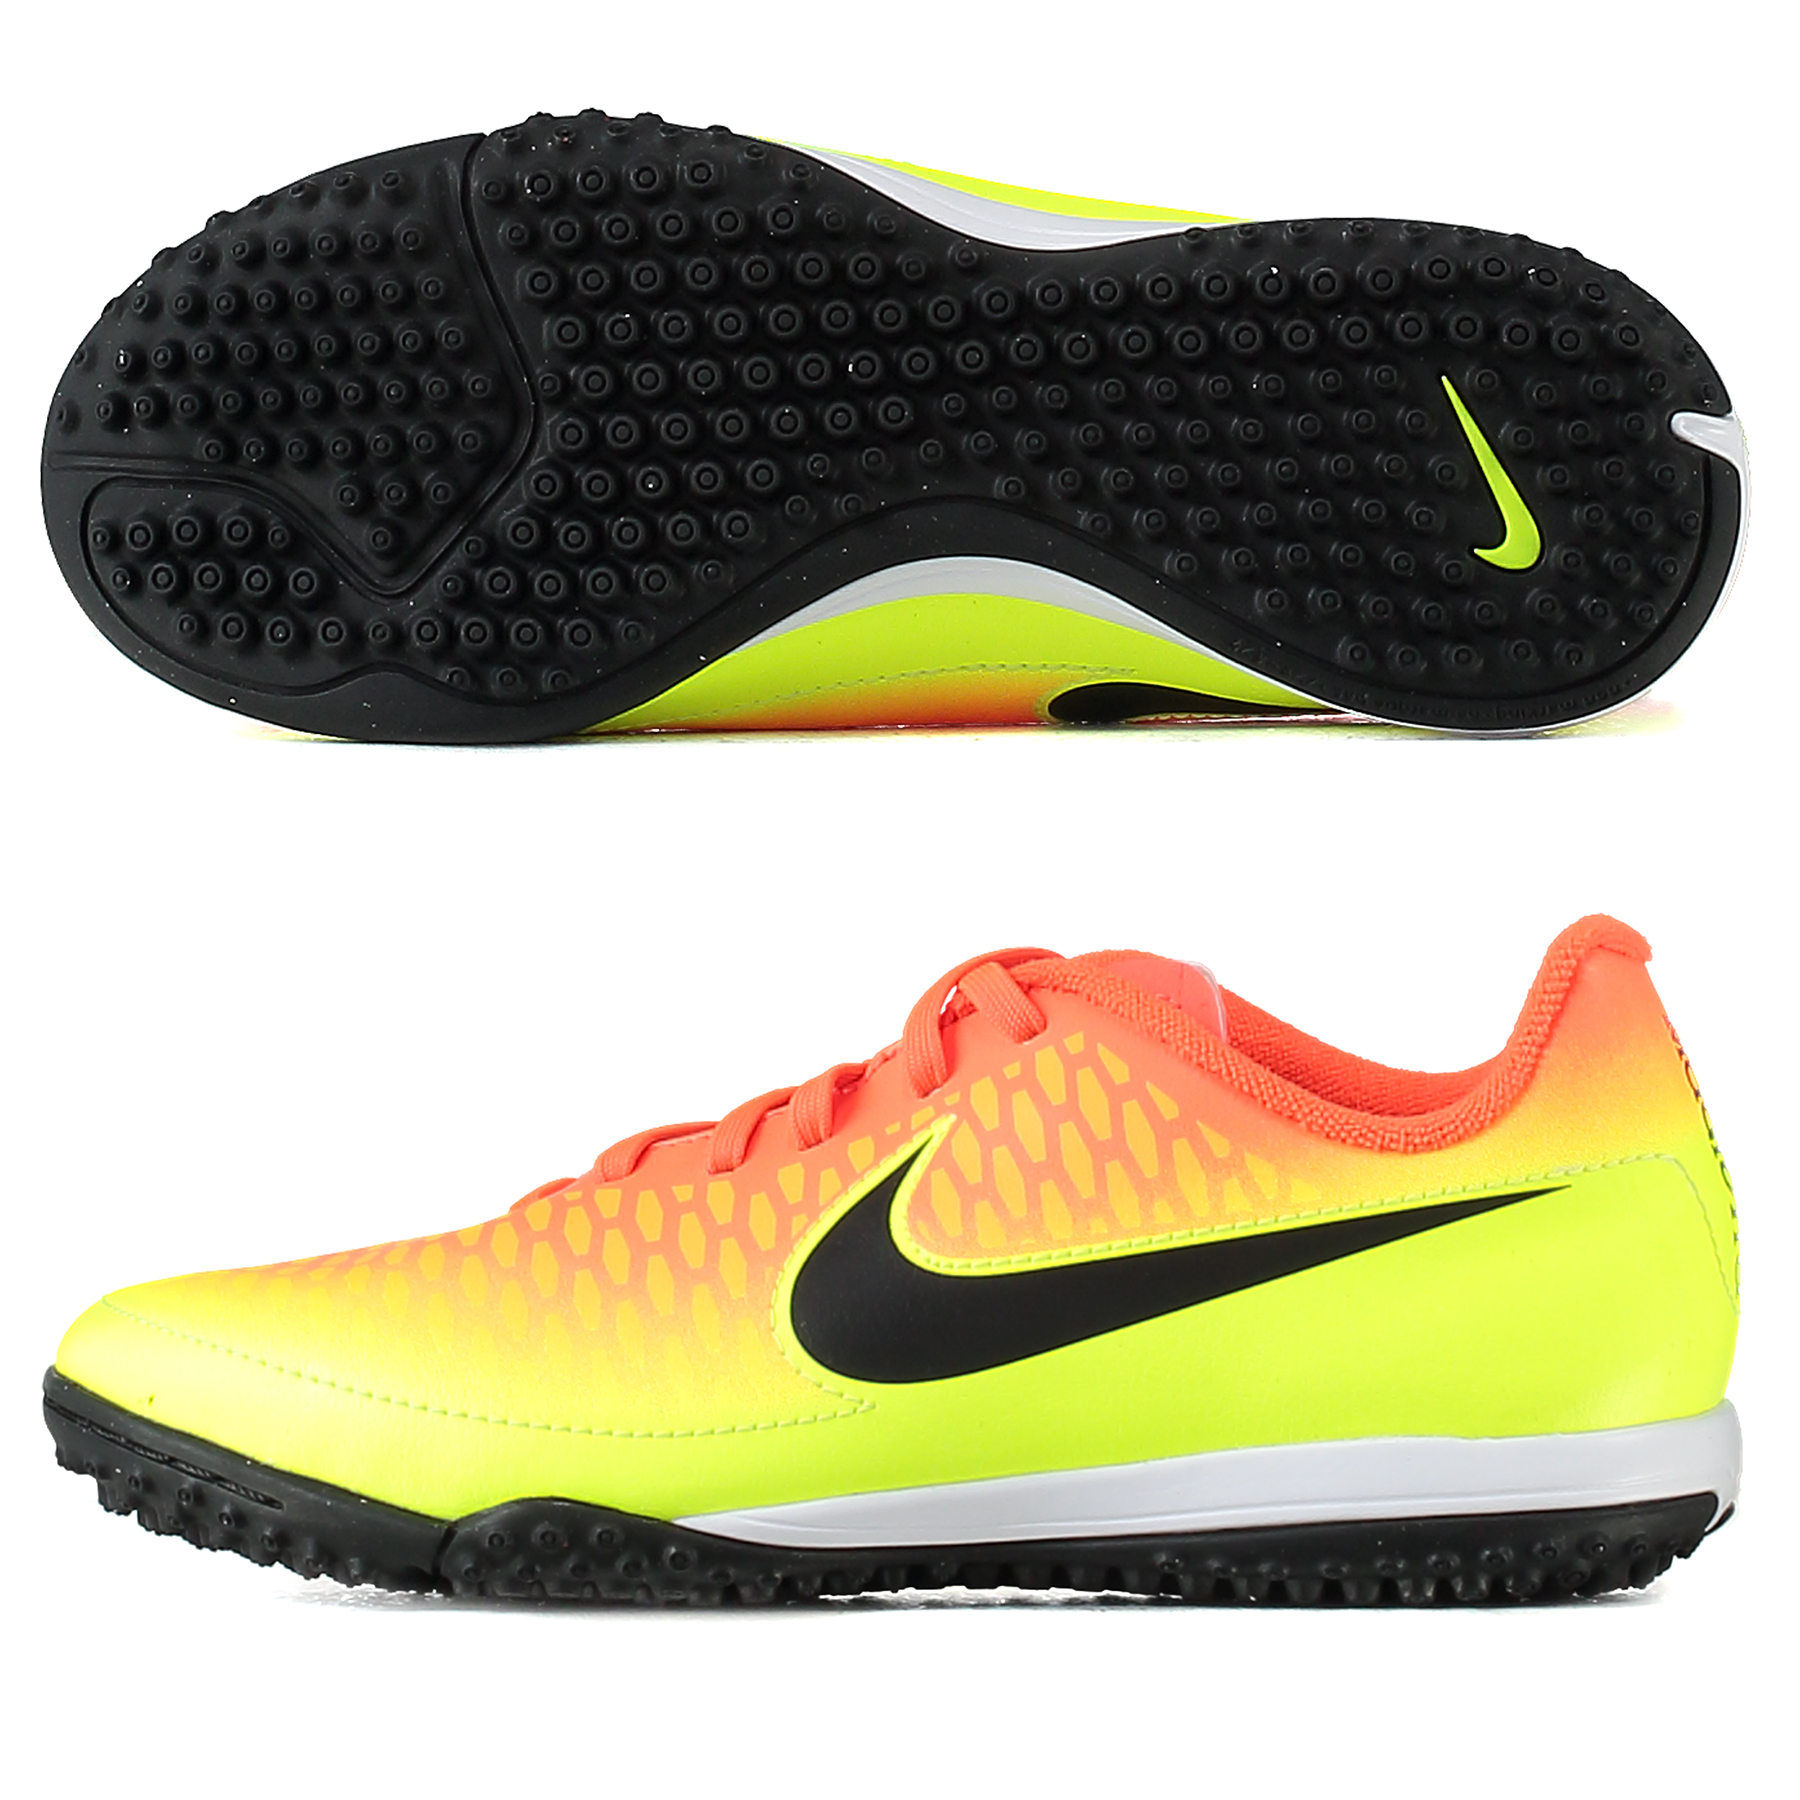 Nike Magista Onda Astroturf Trainers - Total Crimson/Black/Volt/Bright